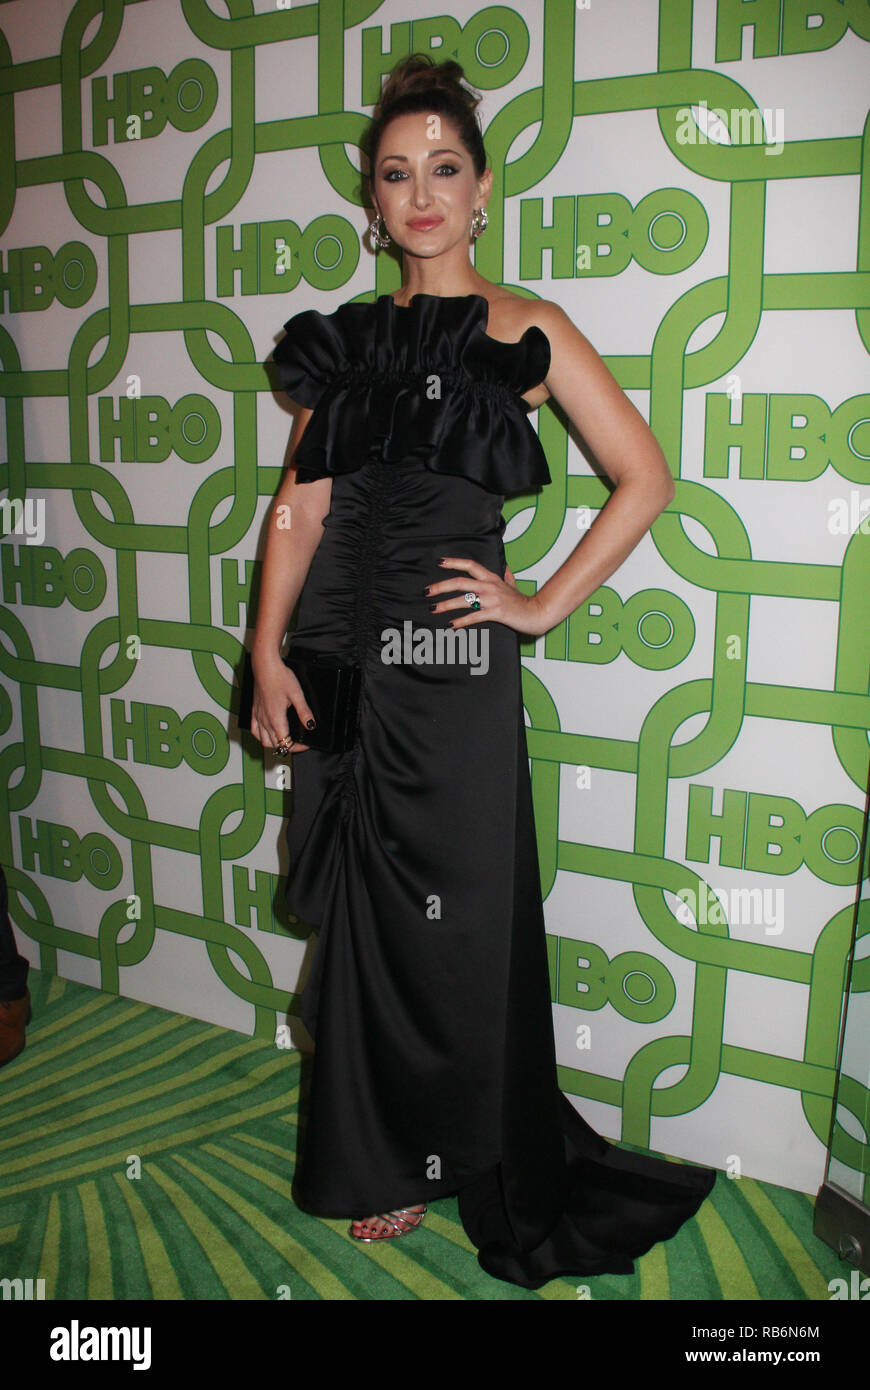 Jamie Lee  01/06/2019 The 76th Annual Golden Globe Awards HBO After Party held at the Circa 55 Restaurant at The Beverly Hilton in Beverly Hills, CA  Photo: Cronos/Hollywood News Stock Photo